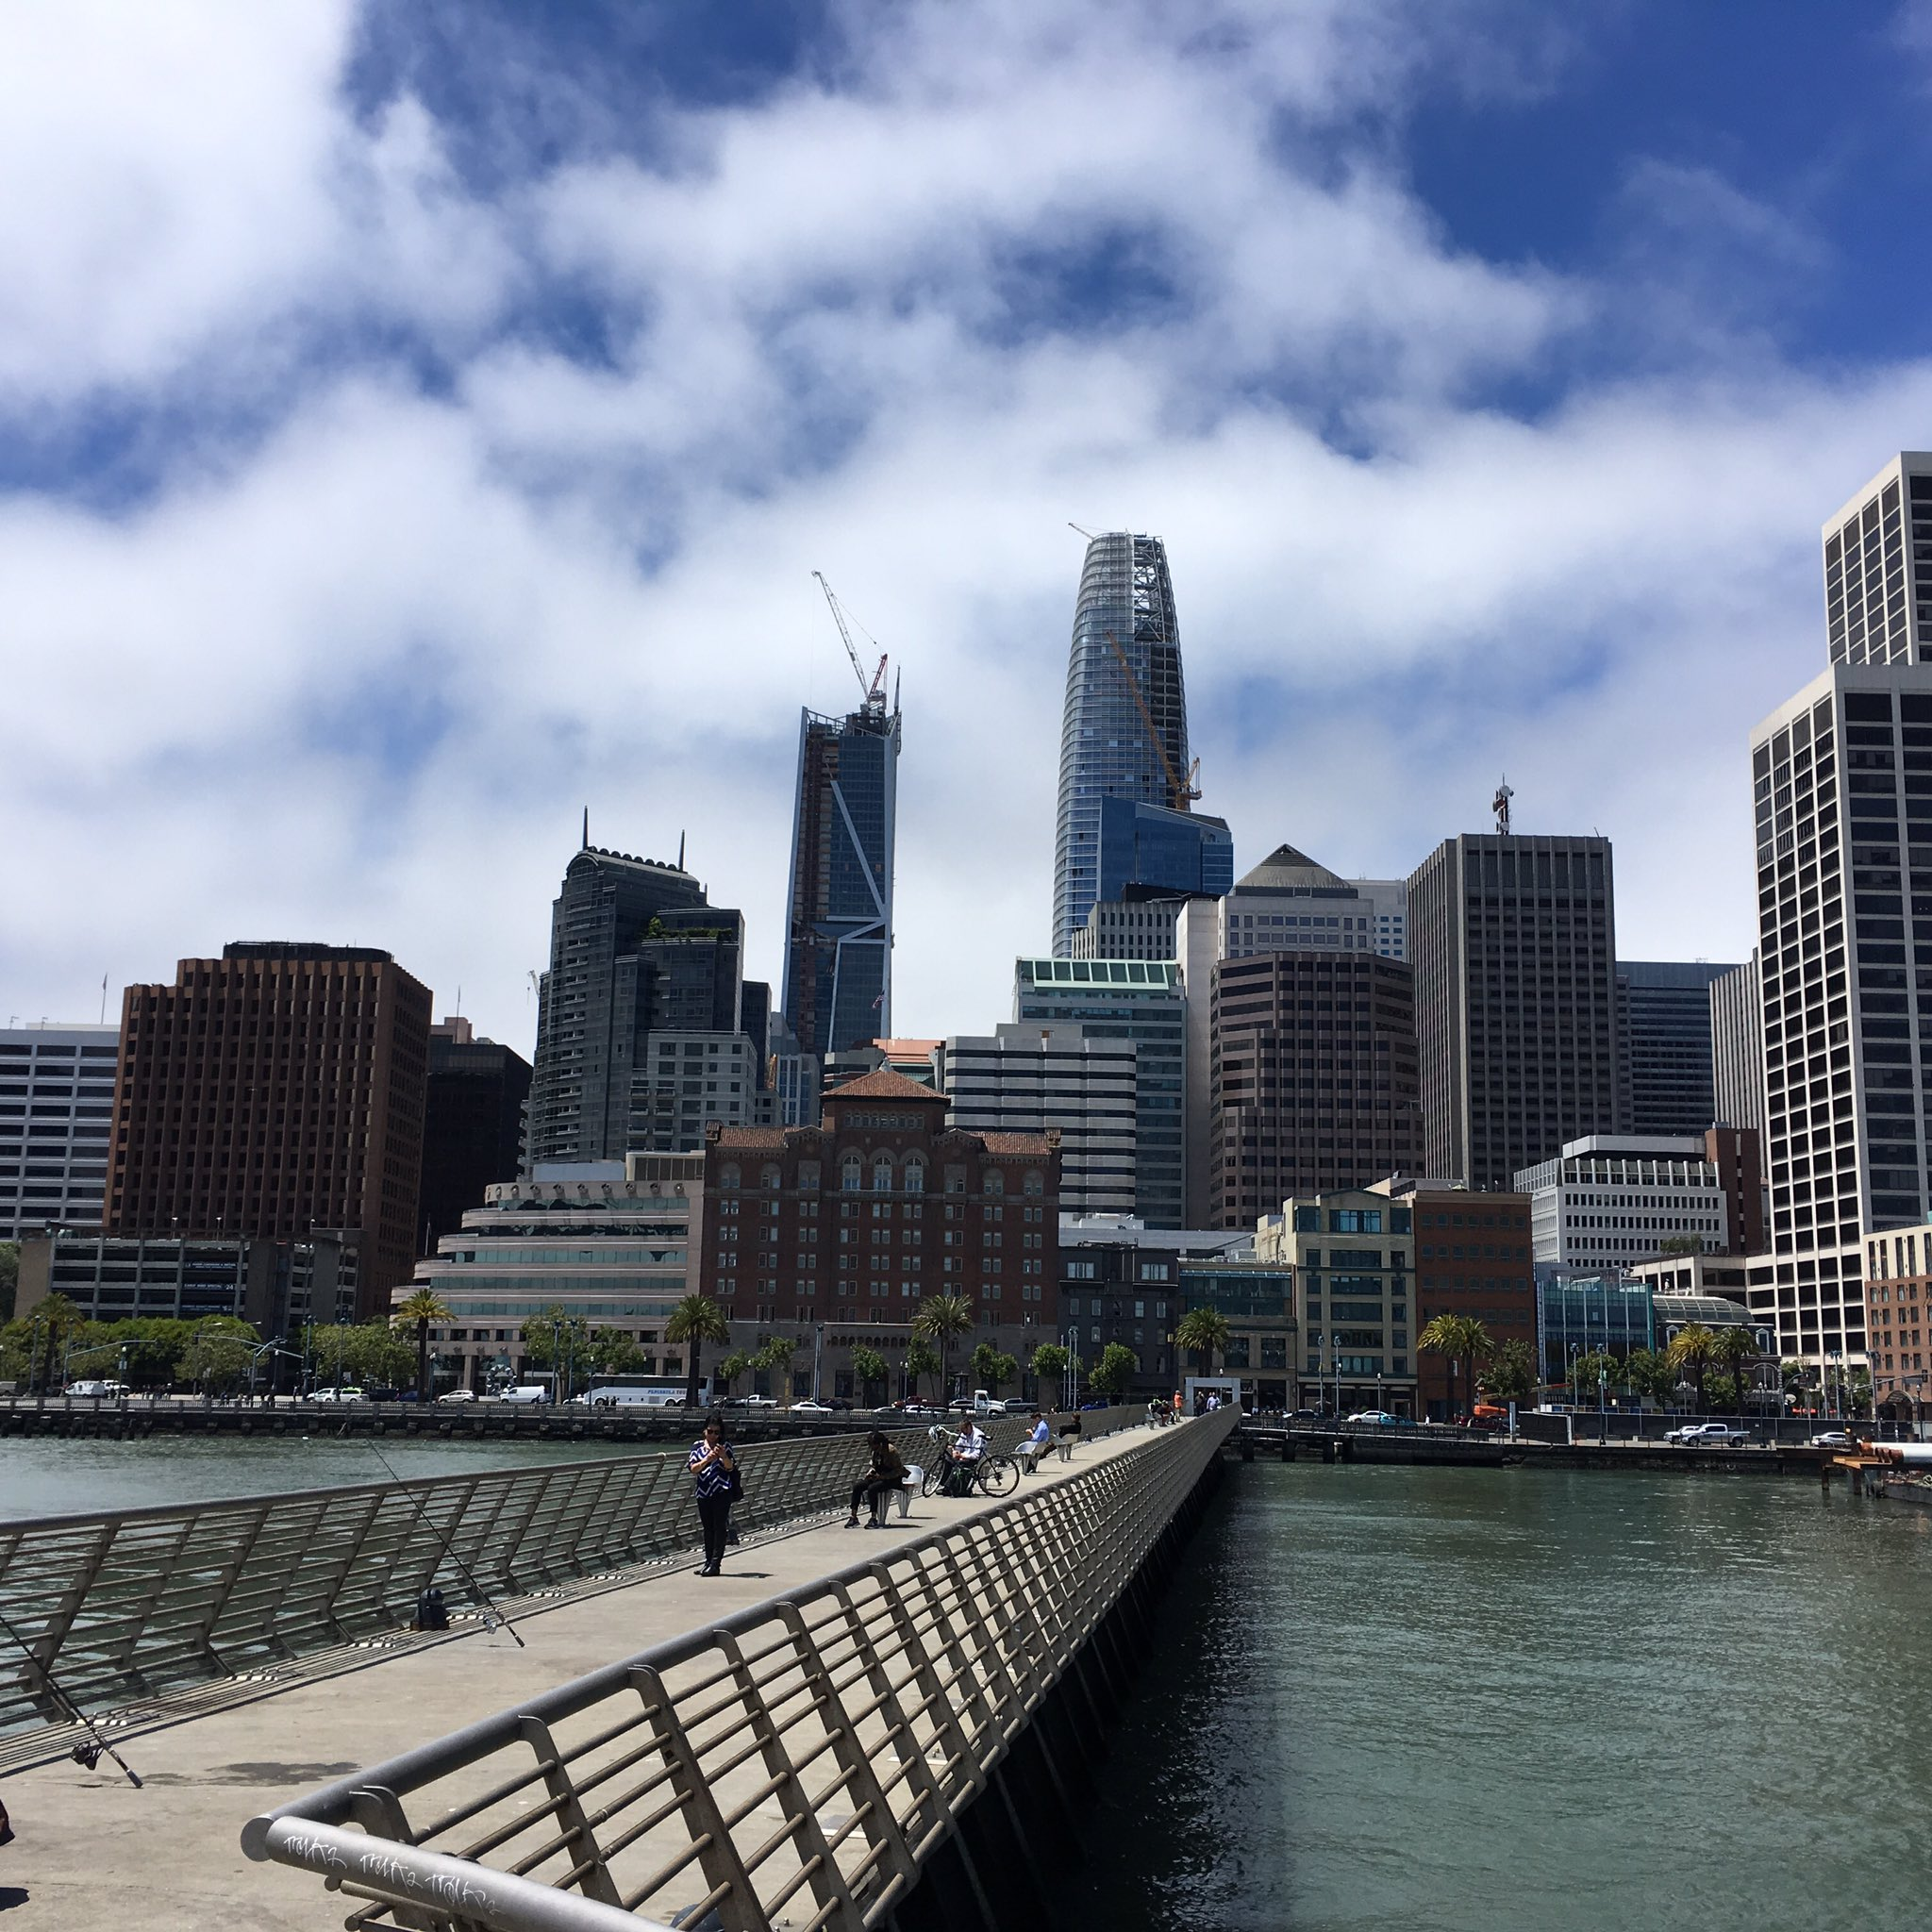 SF's downtown skyline is changing quickly. https://t.co/wU0EDA7soT